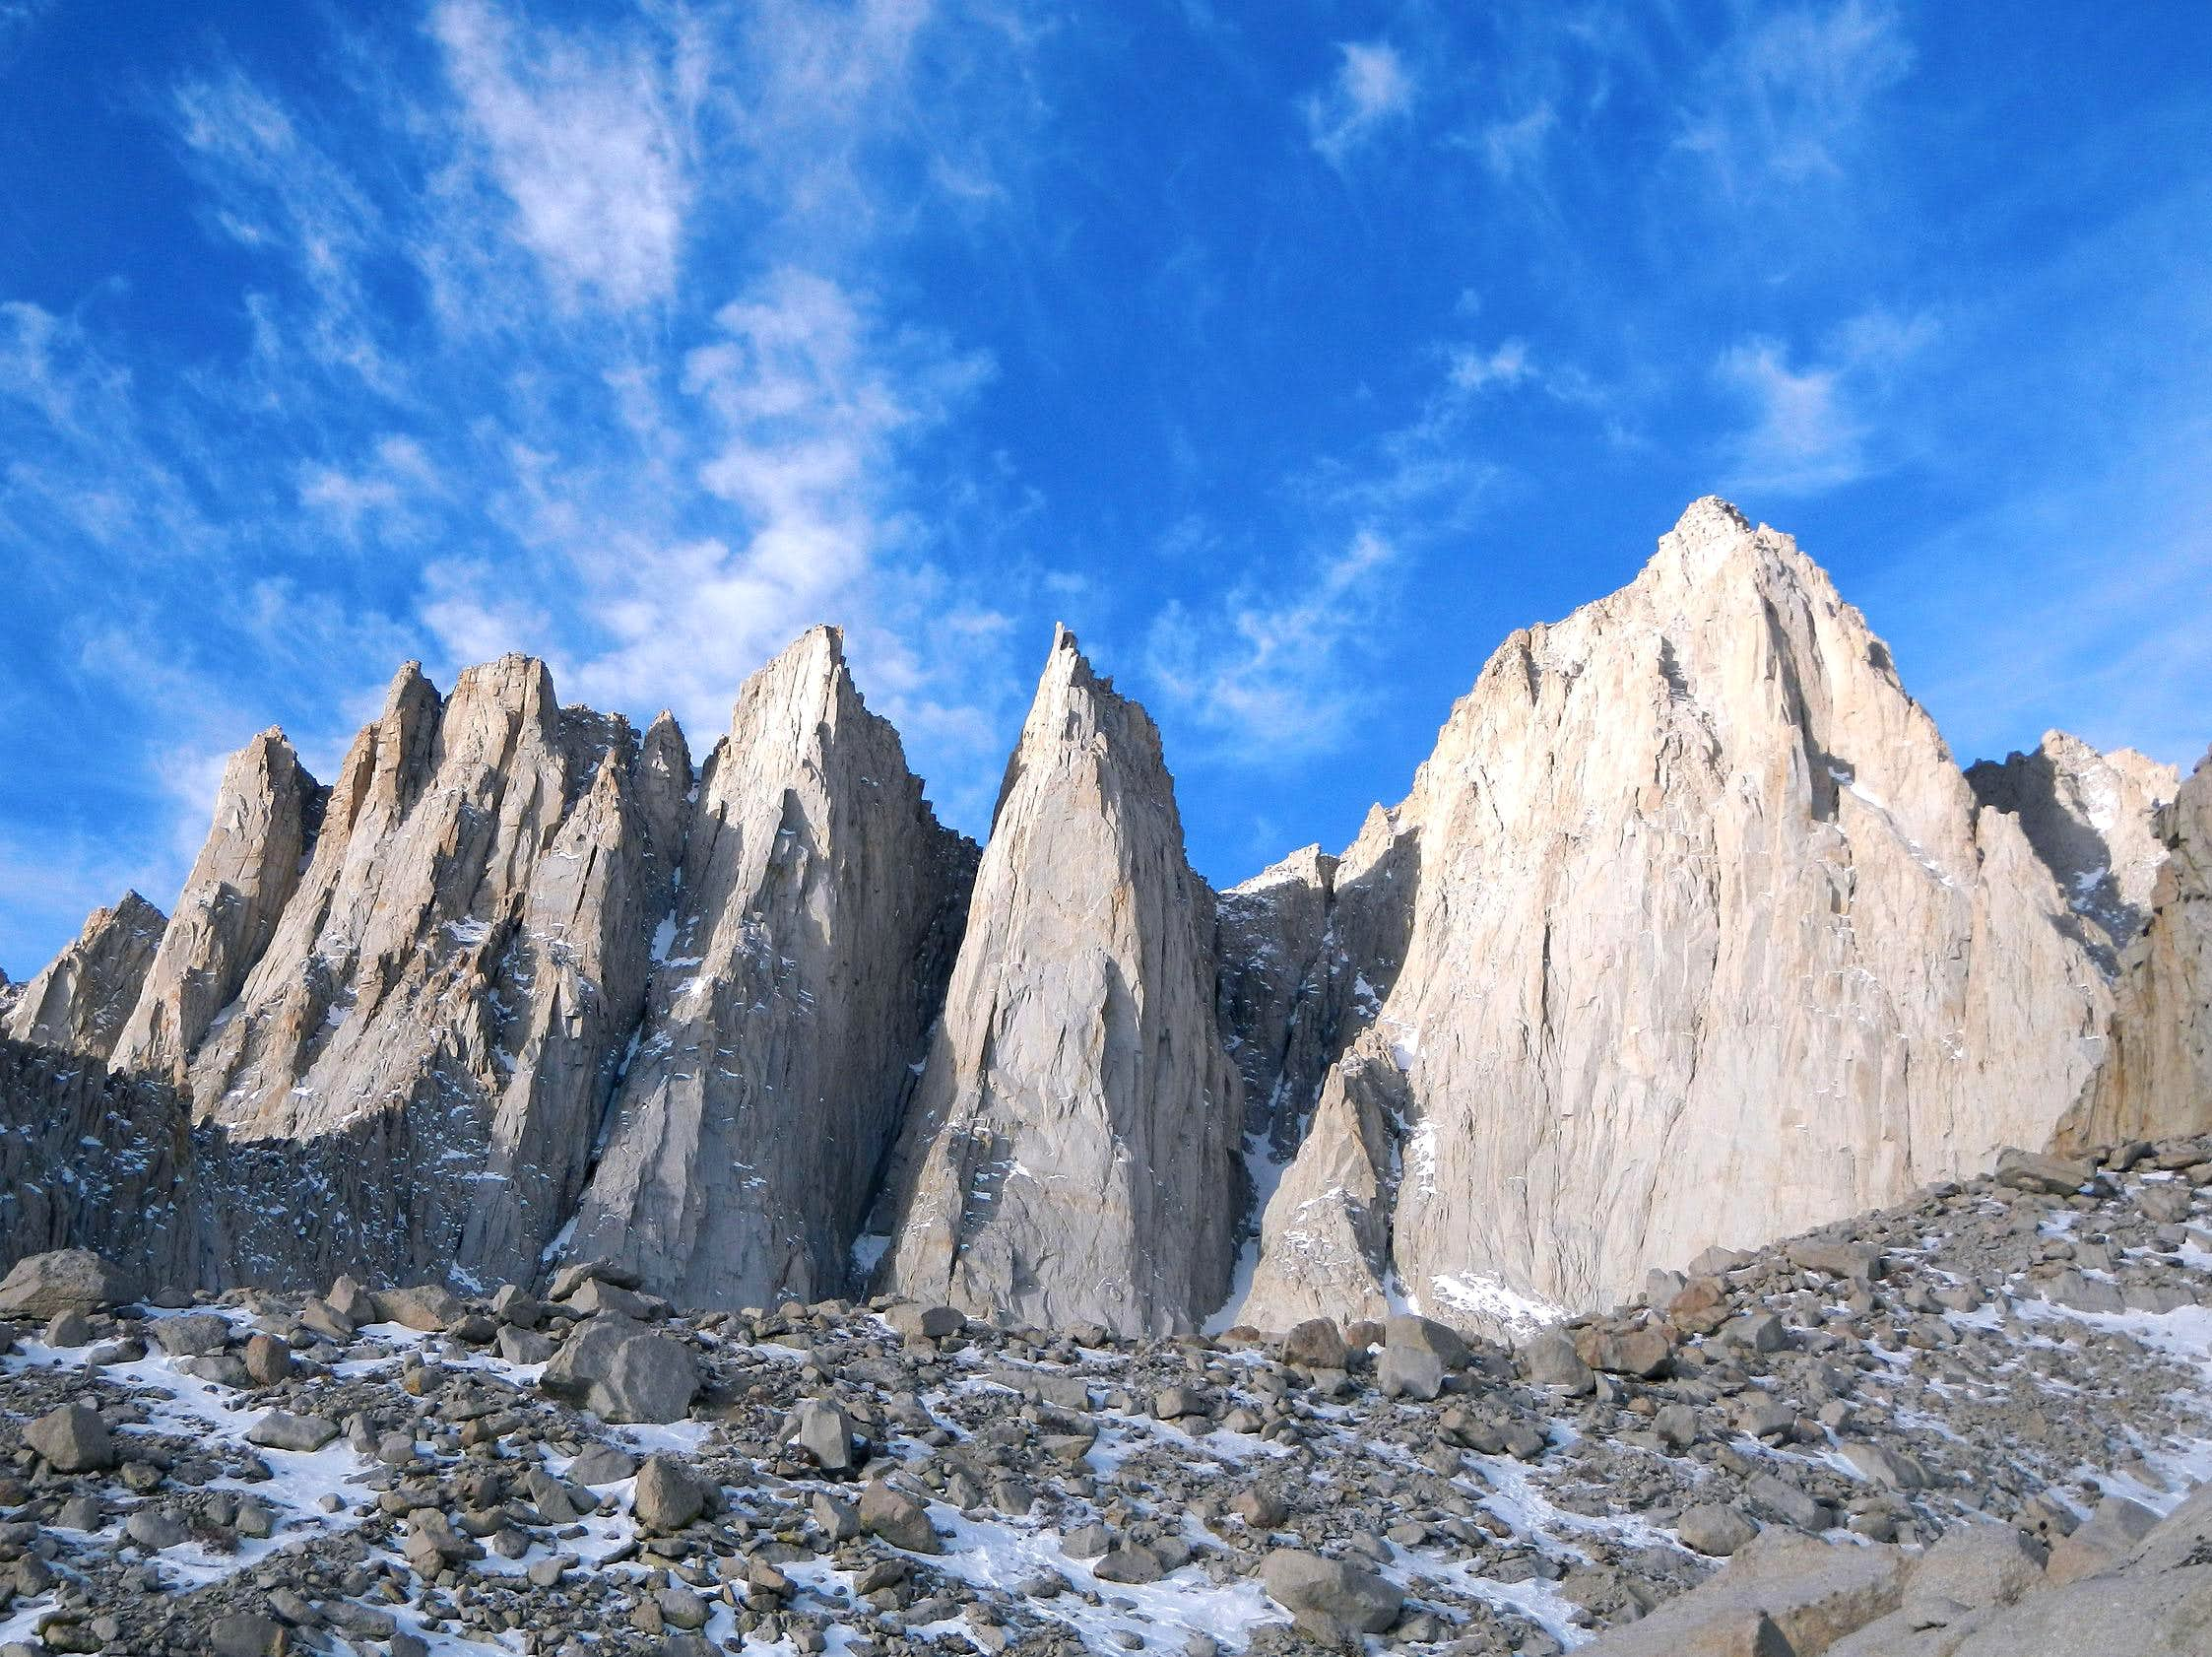 Mount Whitney - Mountaineers Route - December 2011